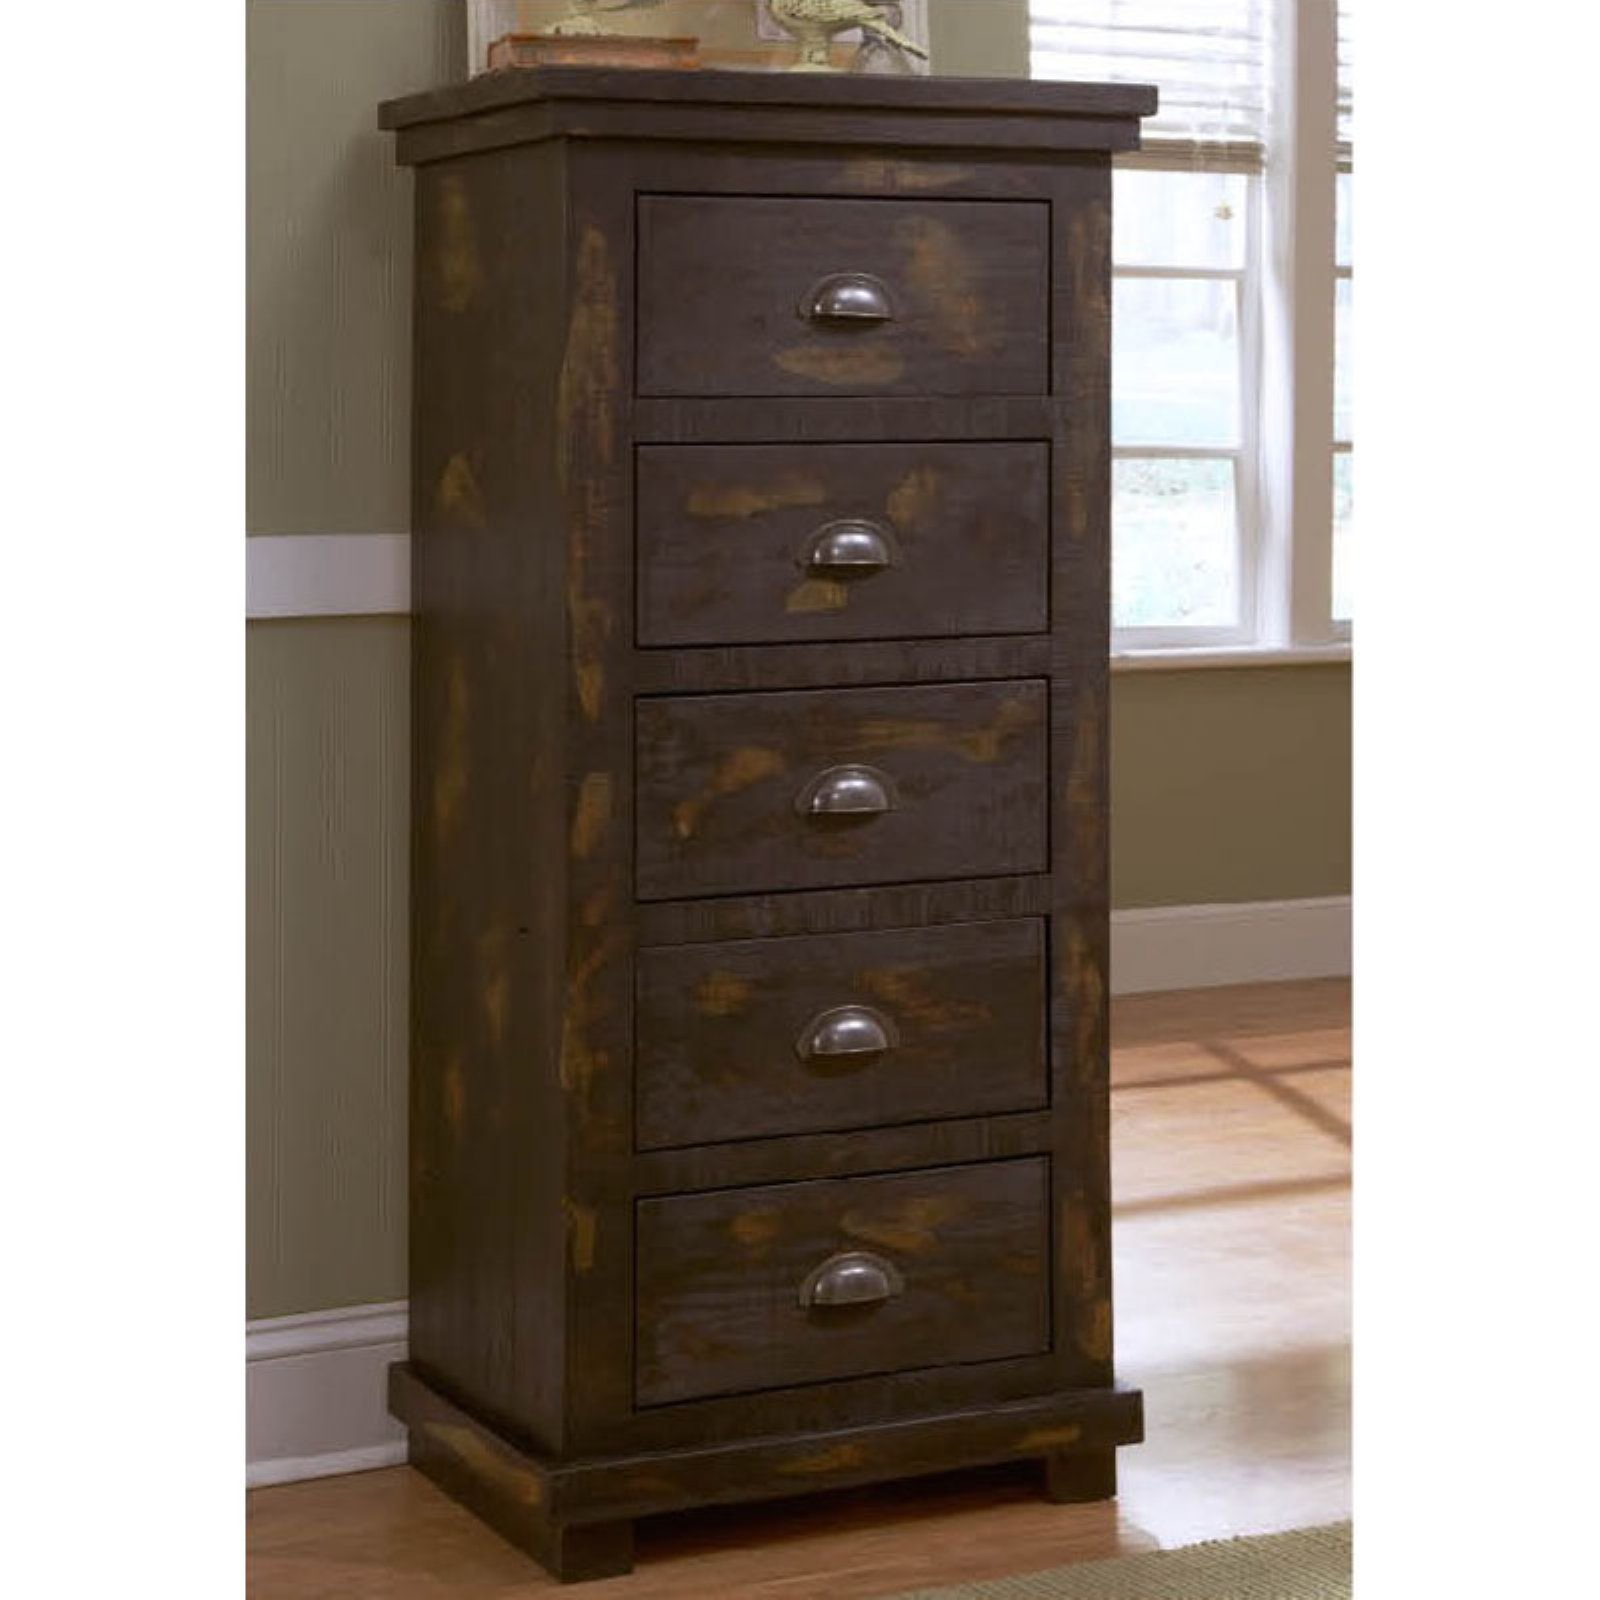 Progressive Furniture Willow 5 Drawer Lingerie Chest